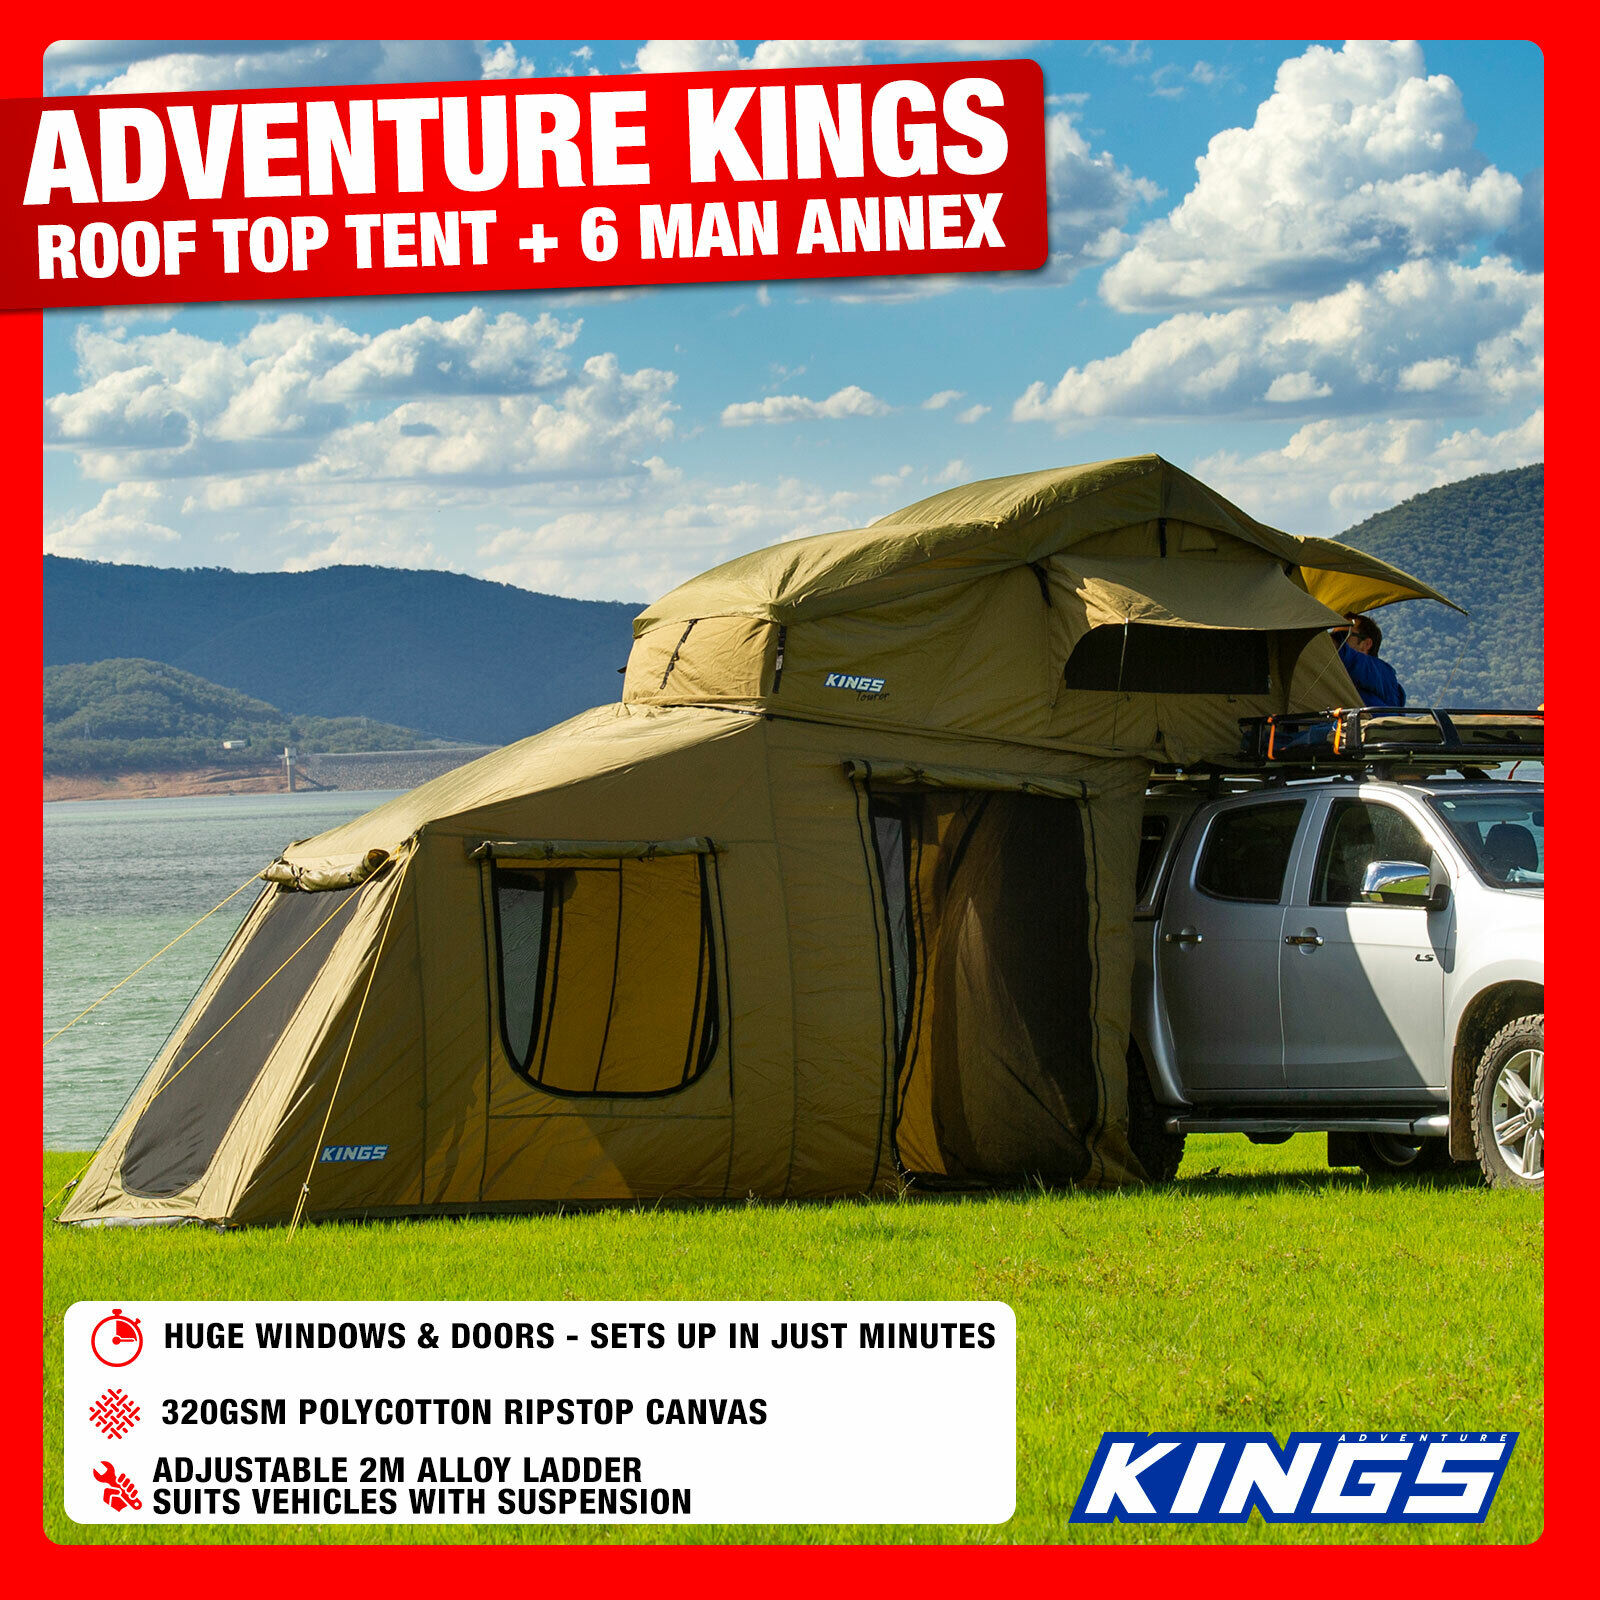 Adventure Kings Roof Top Tent Installation outdoor kings adventure outback roof top tent with 6 man annex camping car